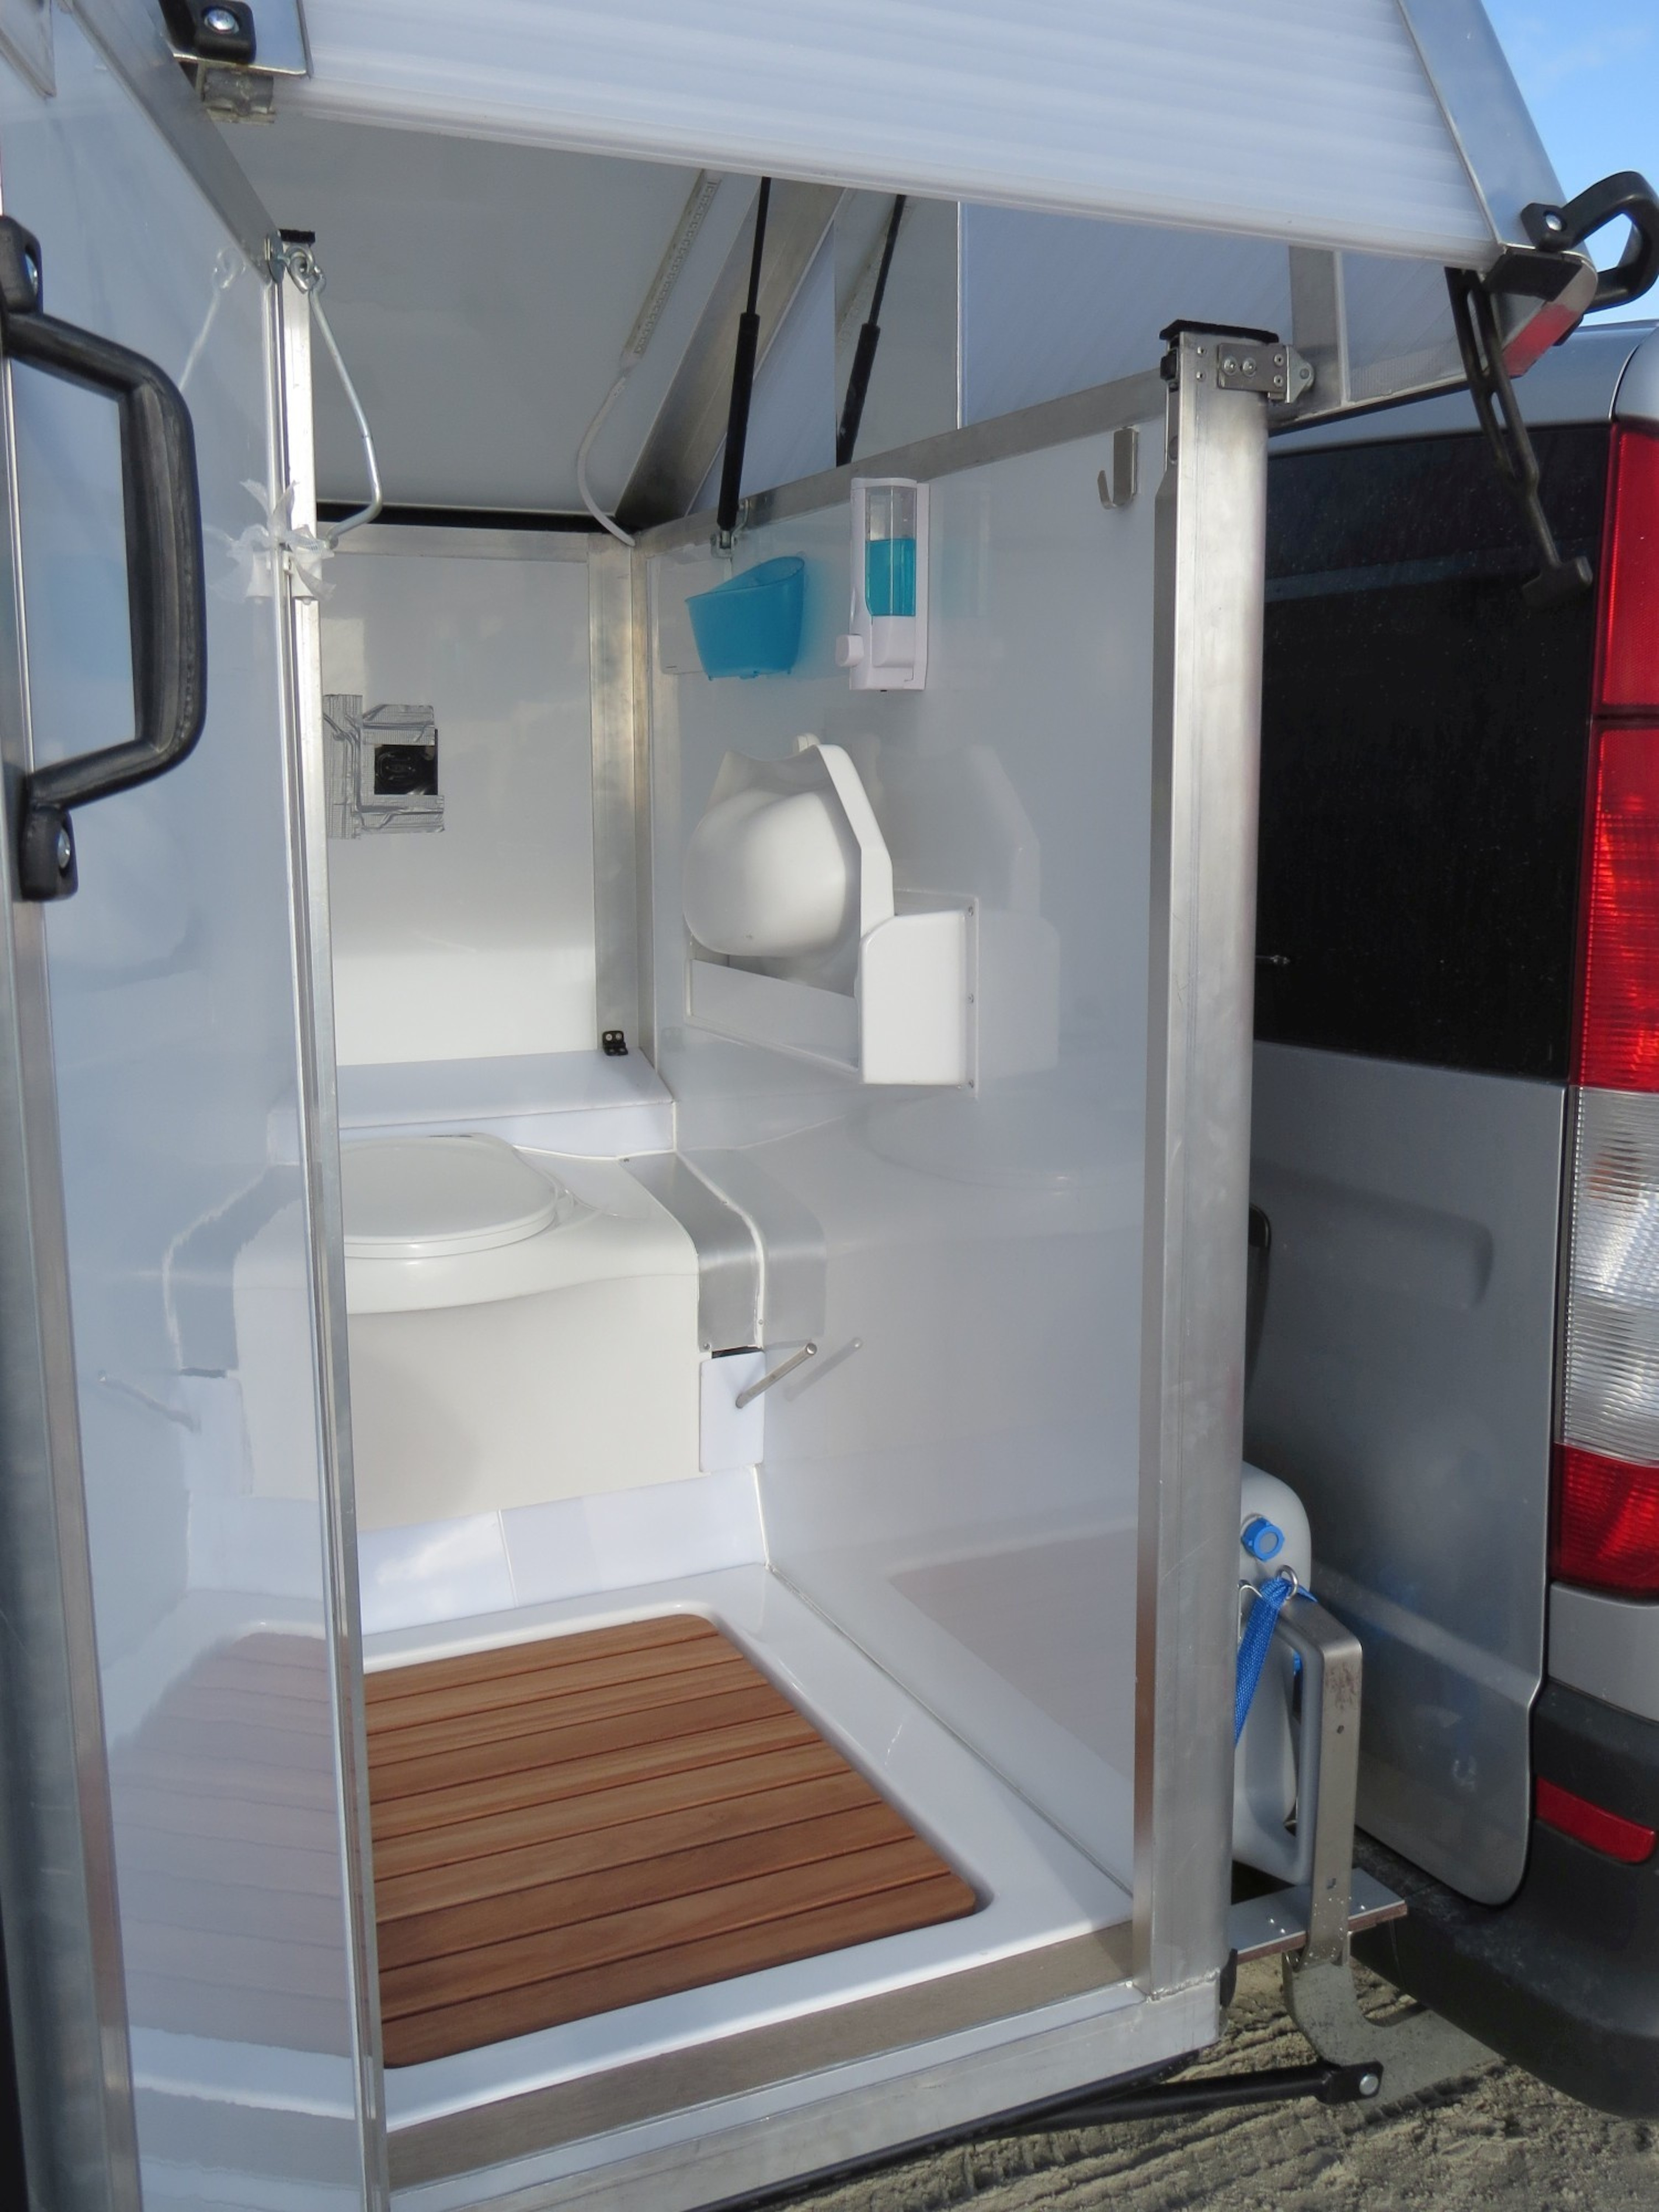 Bath2Go Outhouse Hitches To The Back Of Your Camper